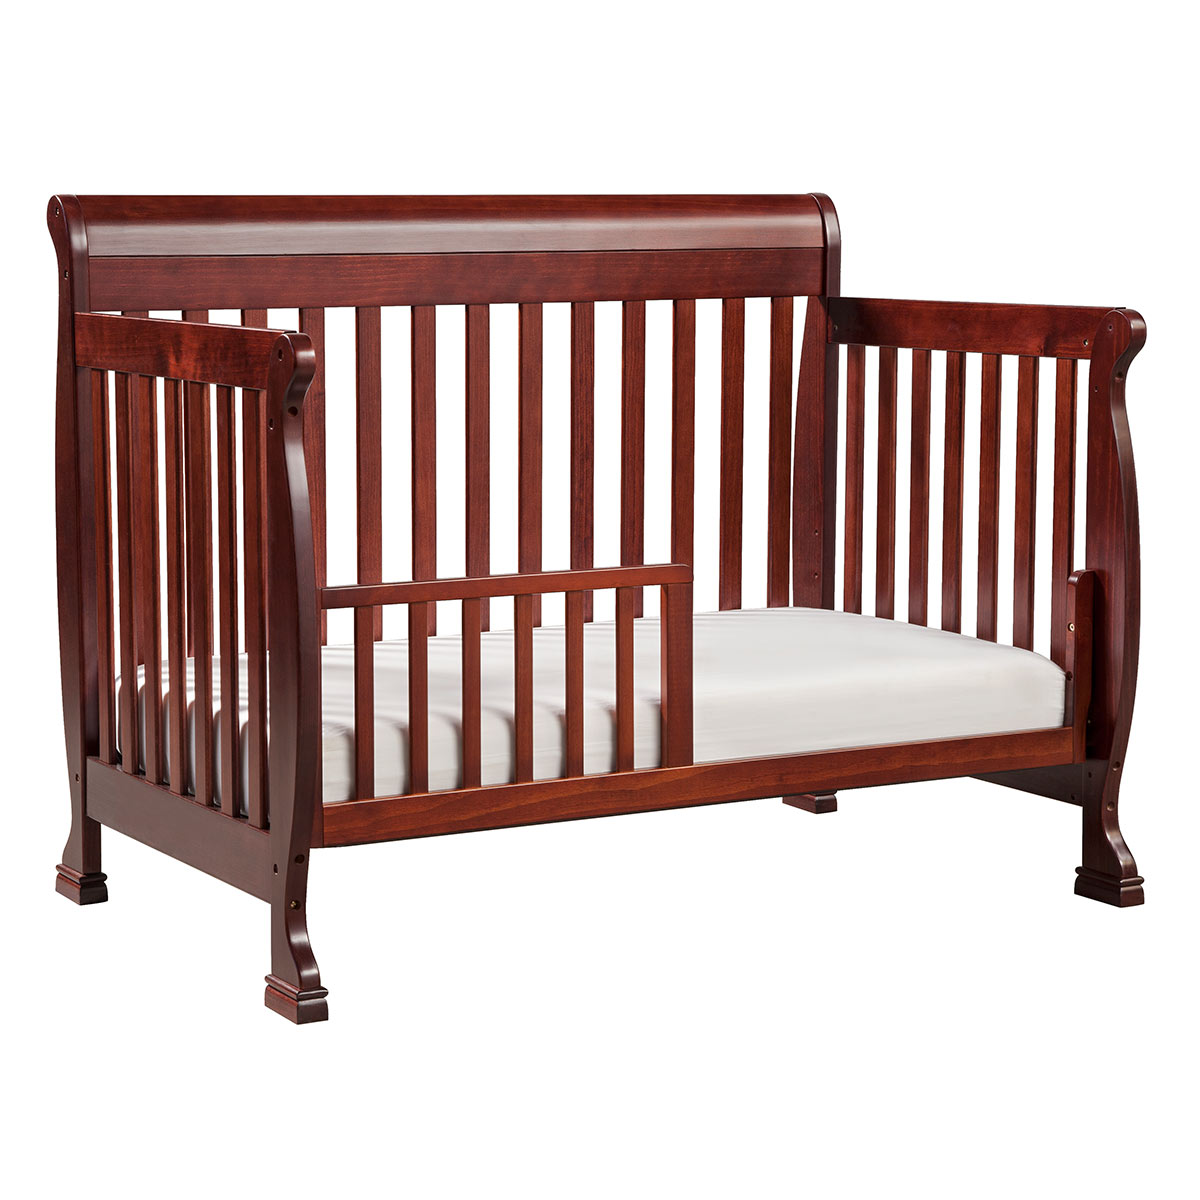 crib with mattress bunk toddler beds combo and bedroom pretty underneath sets cribs loft full under bedspreads bed dresser